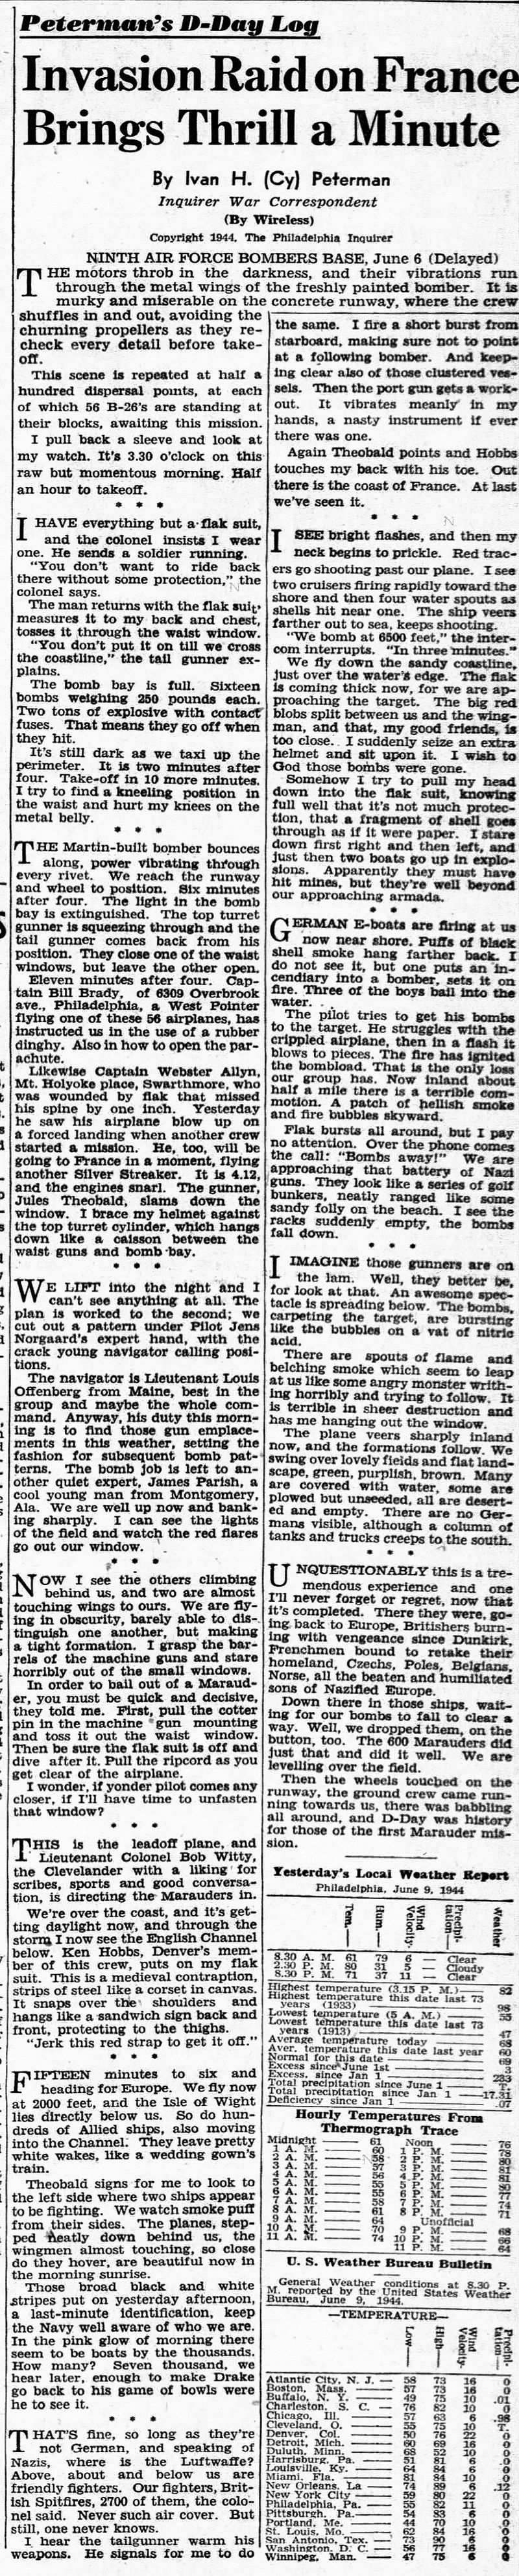 Peterman's D-Day Log news clipping